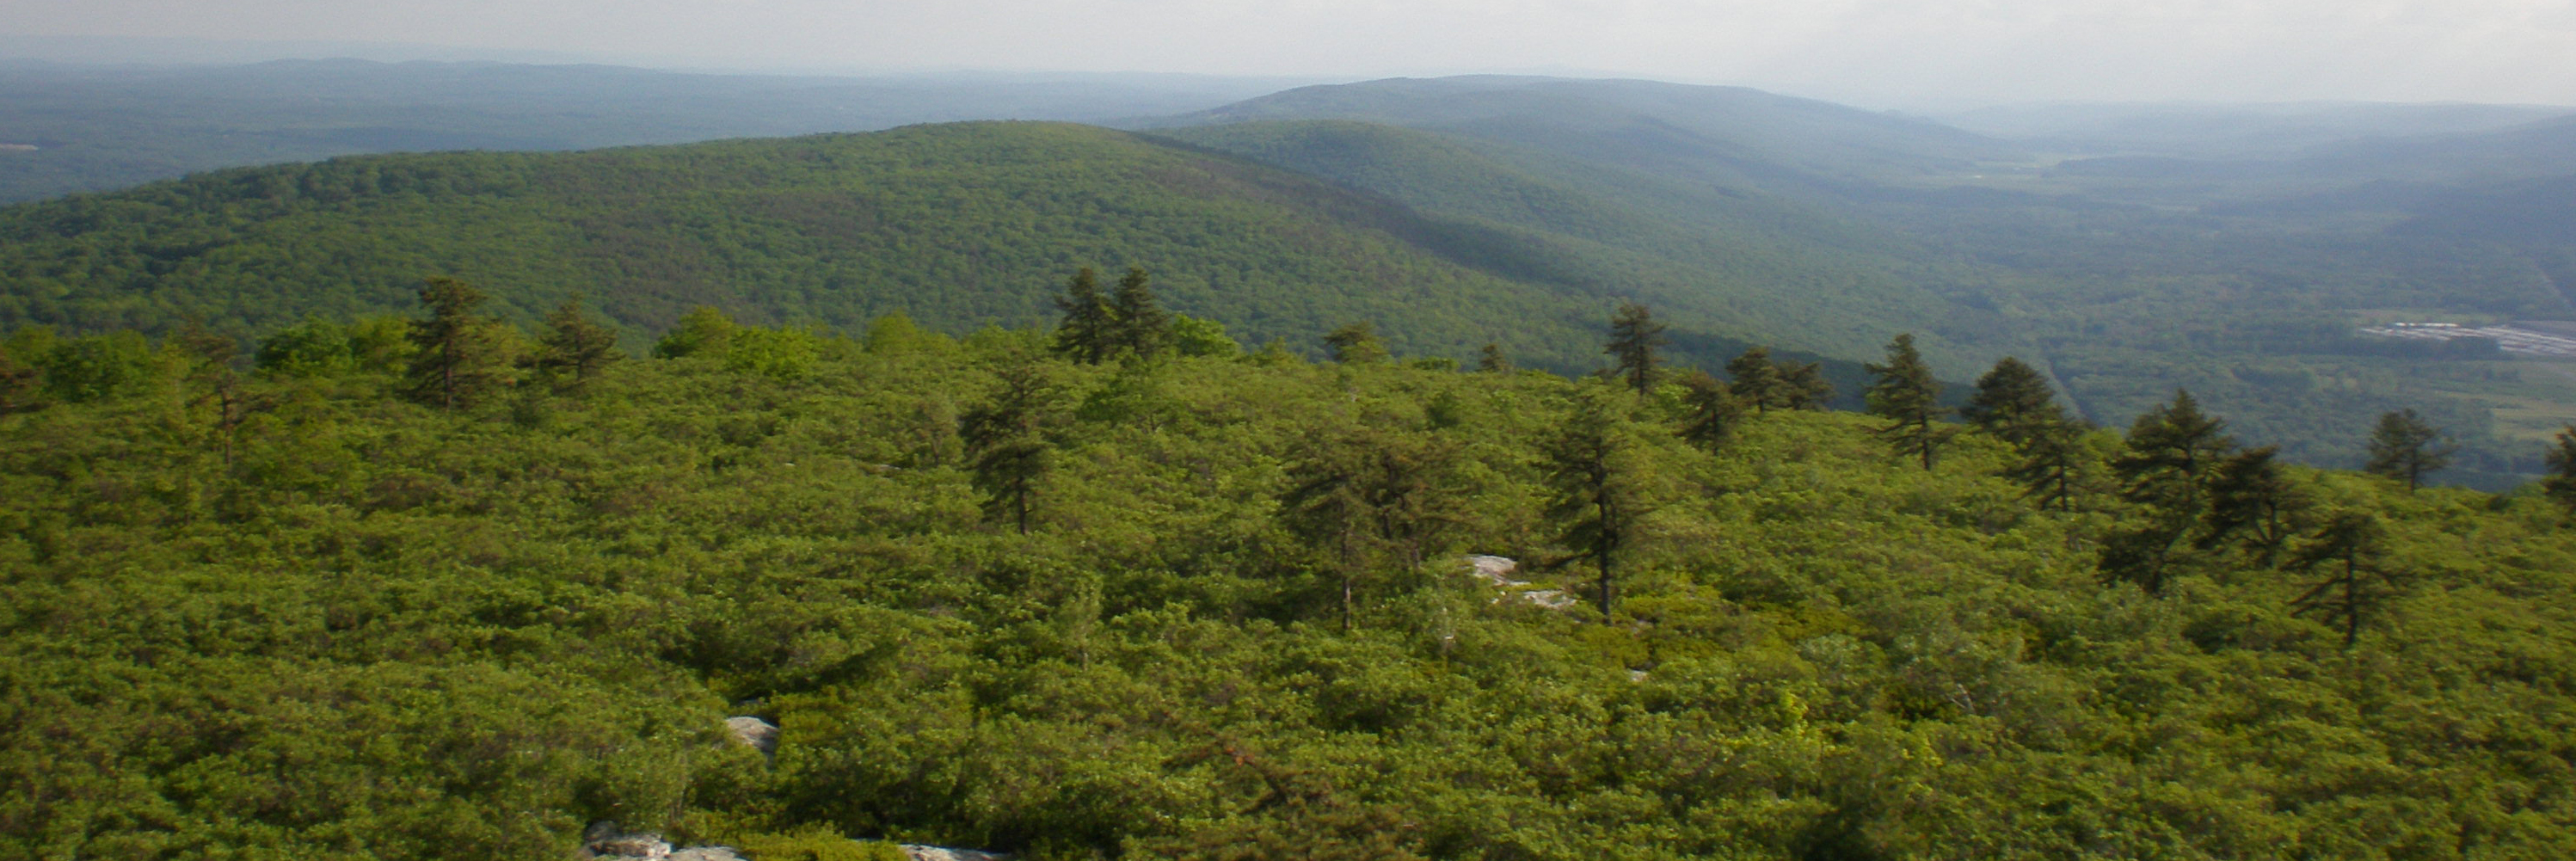 Looking south along the Shawangunk Ridge in summer.